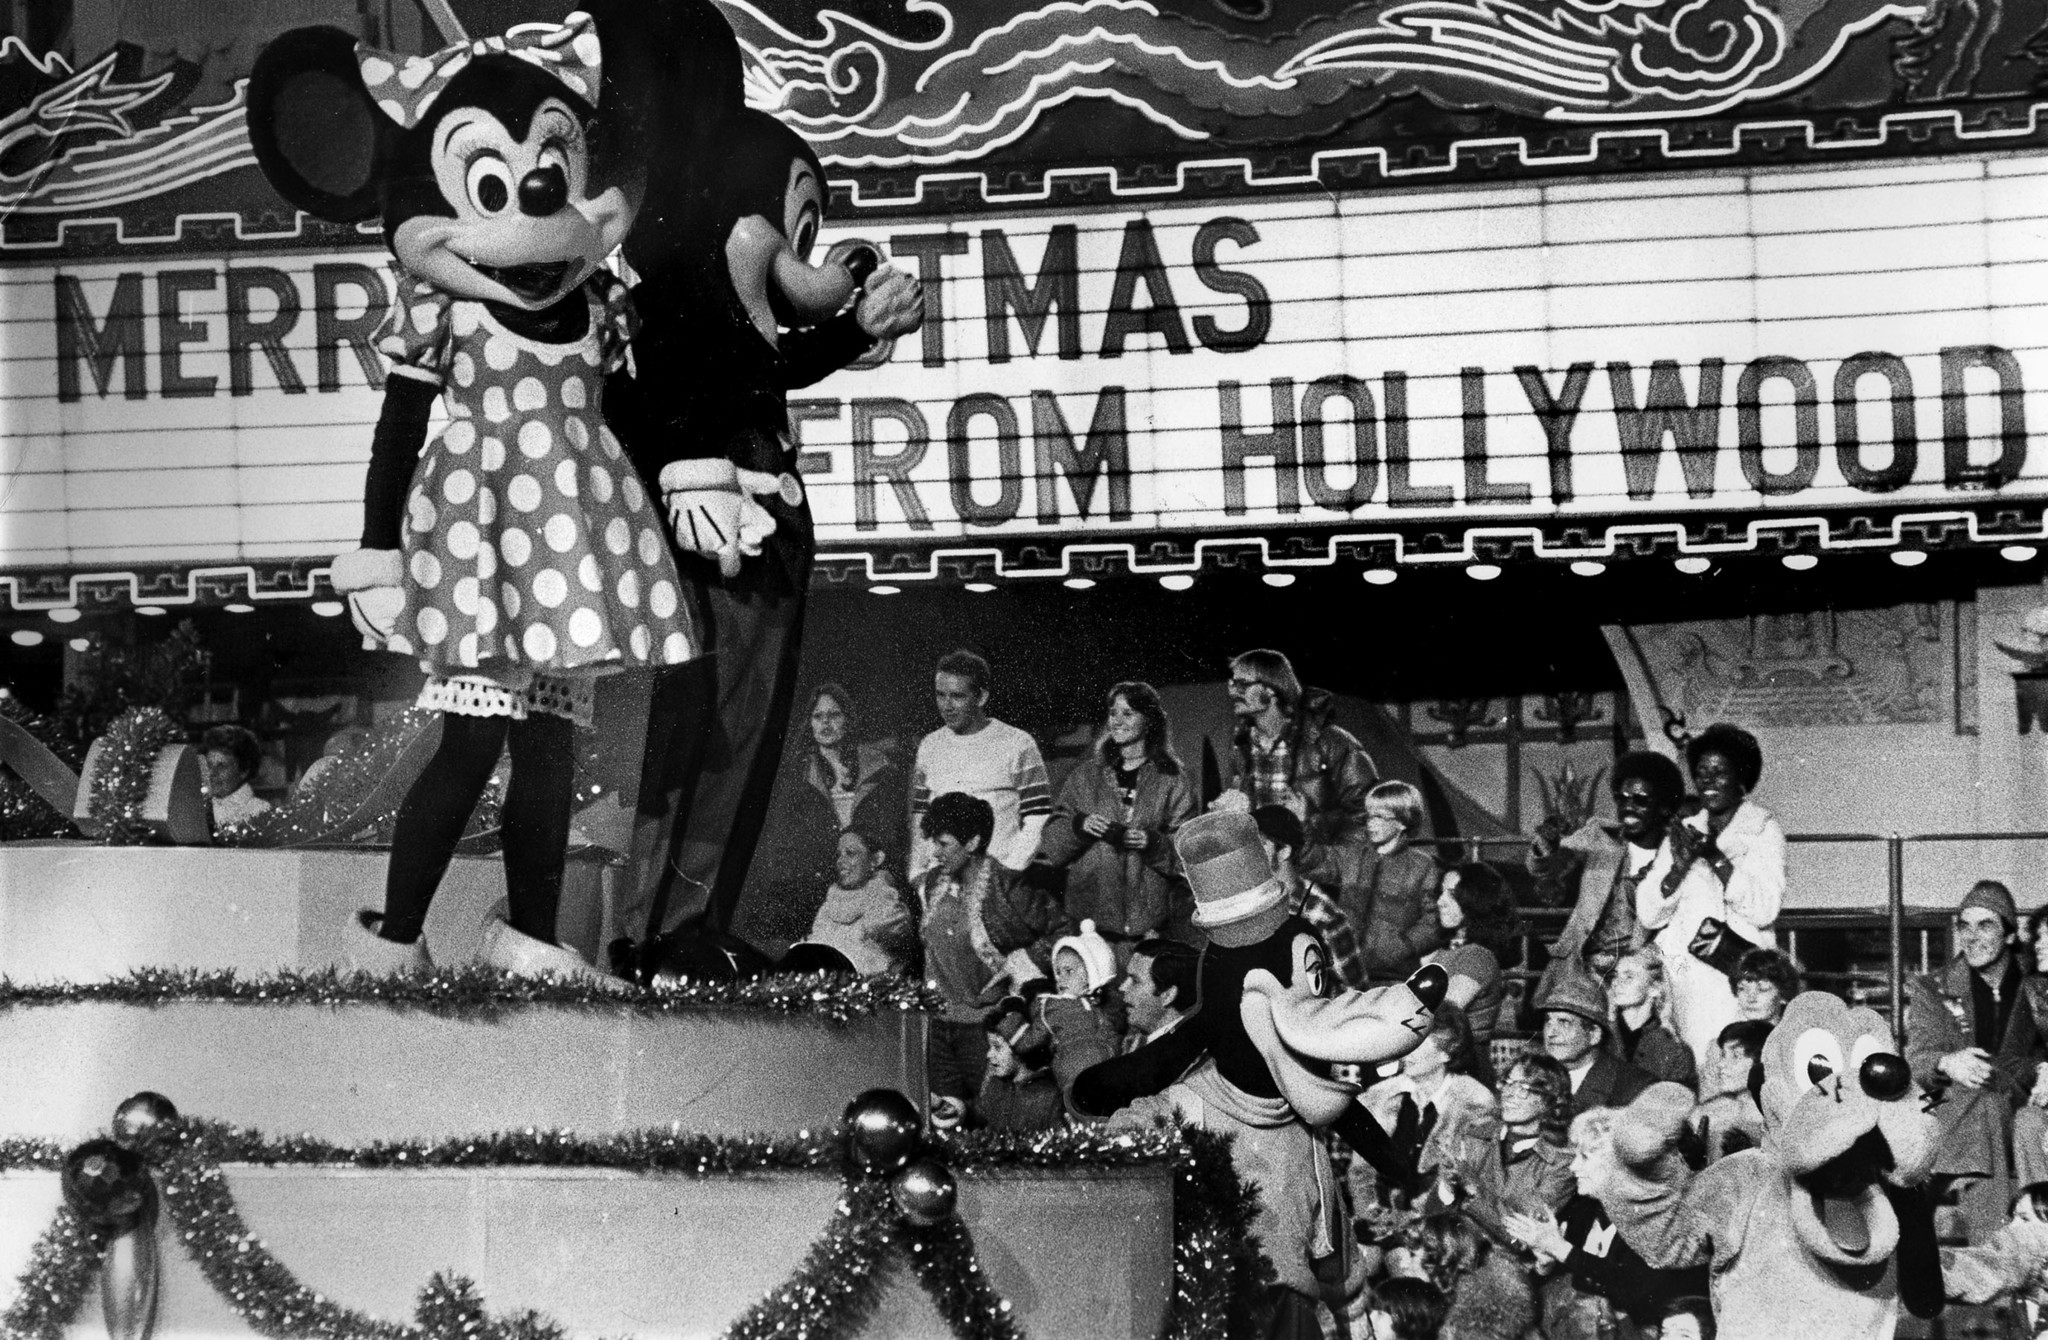 Nov. 26, 1978: Mickey and Minnie Mouse proved big hits as 300,000 viewed the Hollywood Christmas Par